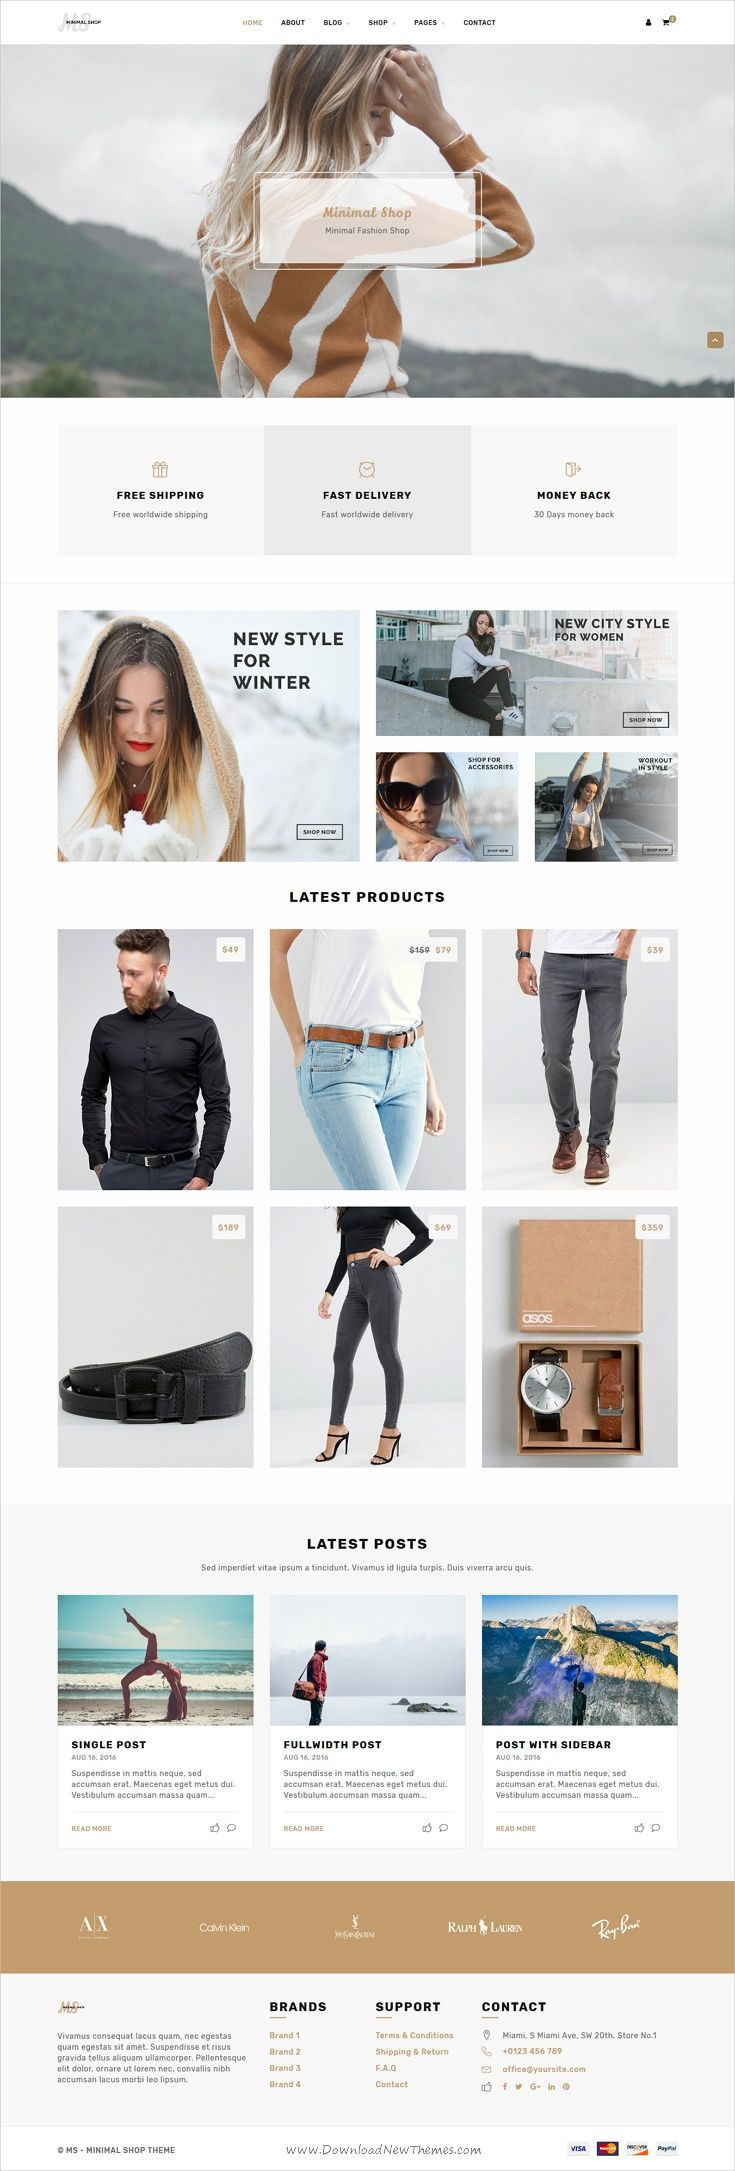 MS is an beautiful and functional design HTML #bootstrap template for #minimal #shop eCommerce website with 6 unique homepage layouts download now➩ https://wrapbootstrap.com/theme/ms-minimal-shop-template-WB024960N?ref=datasata